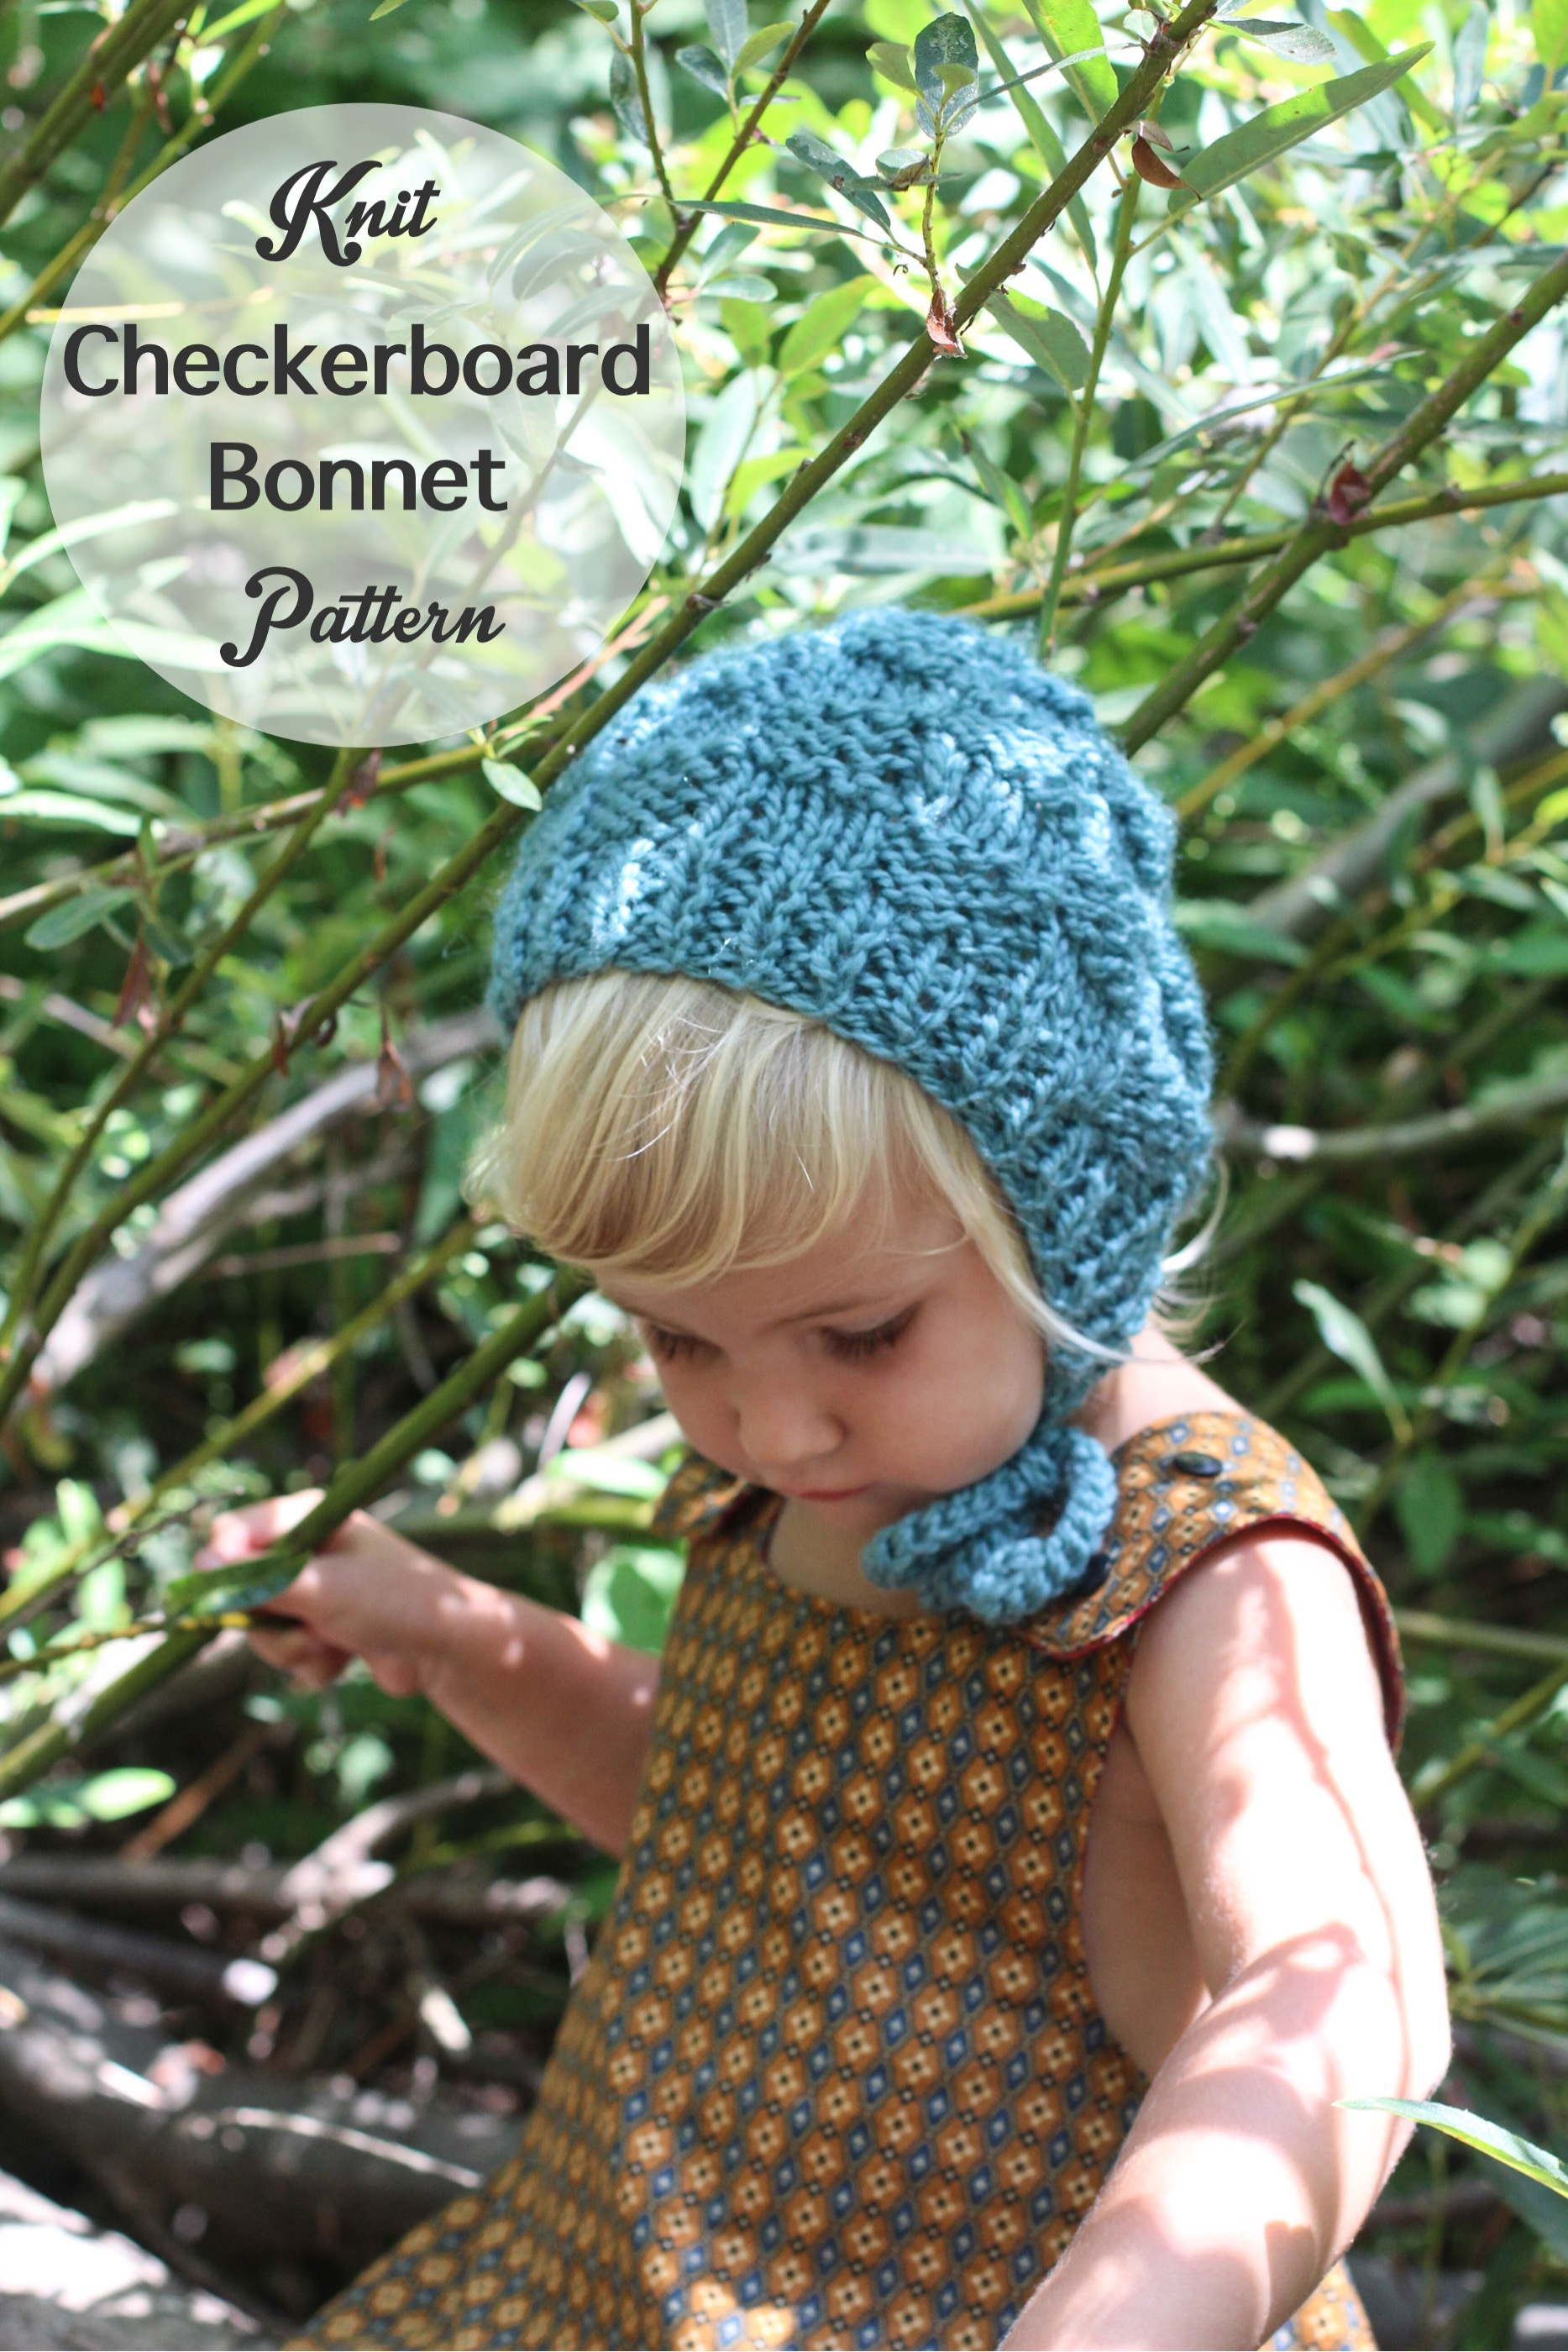 Knit Checkerboard Baby Bonnet Pattern by Bluecorduroy.com